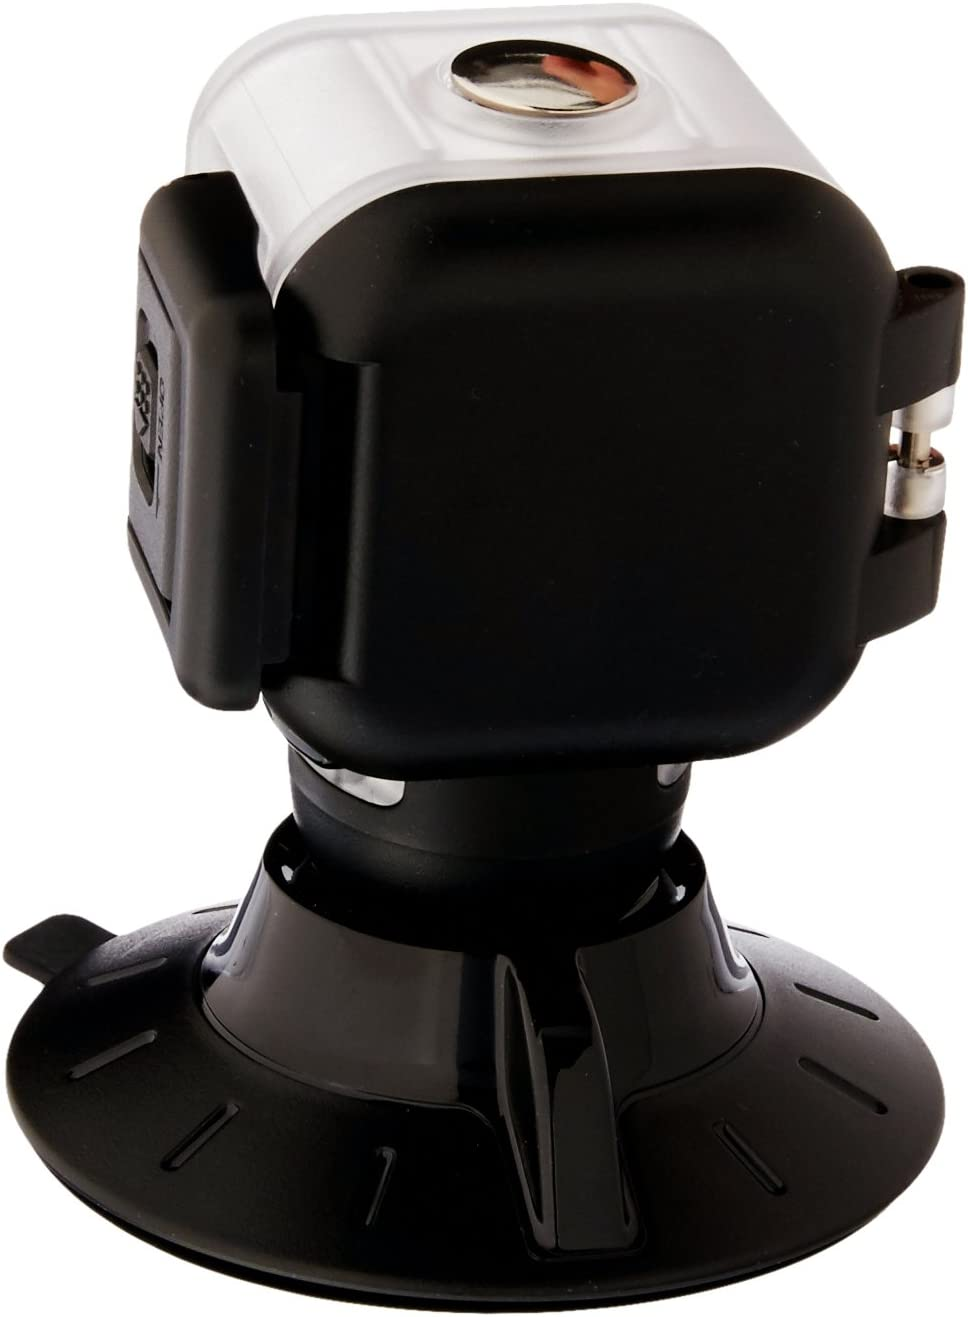 Polaroid Suction Cup Mount for the Polaroid CUBE CUBE Includes Waterproof Case HD Action Lifestyle Camera